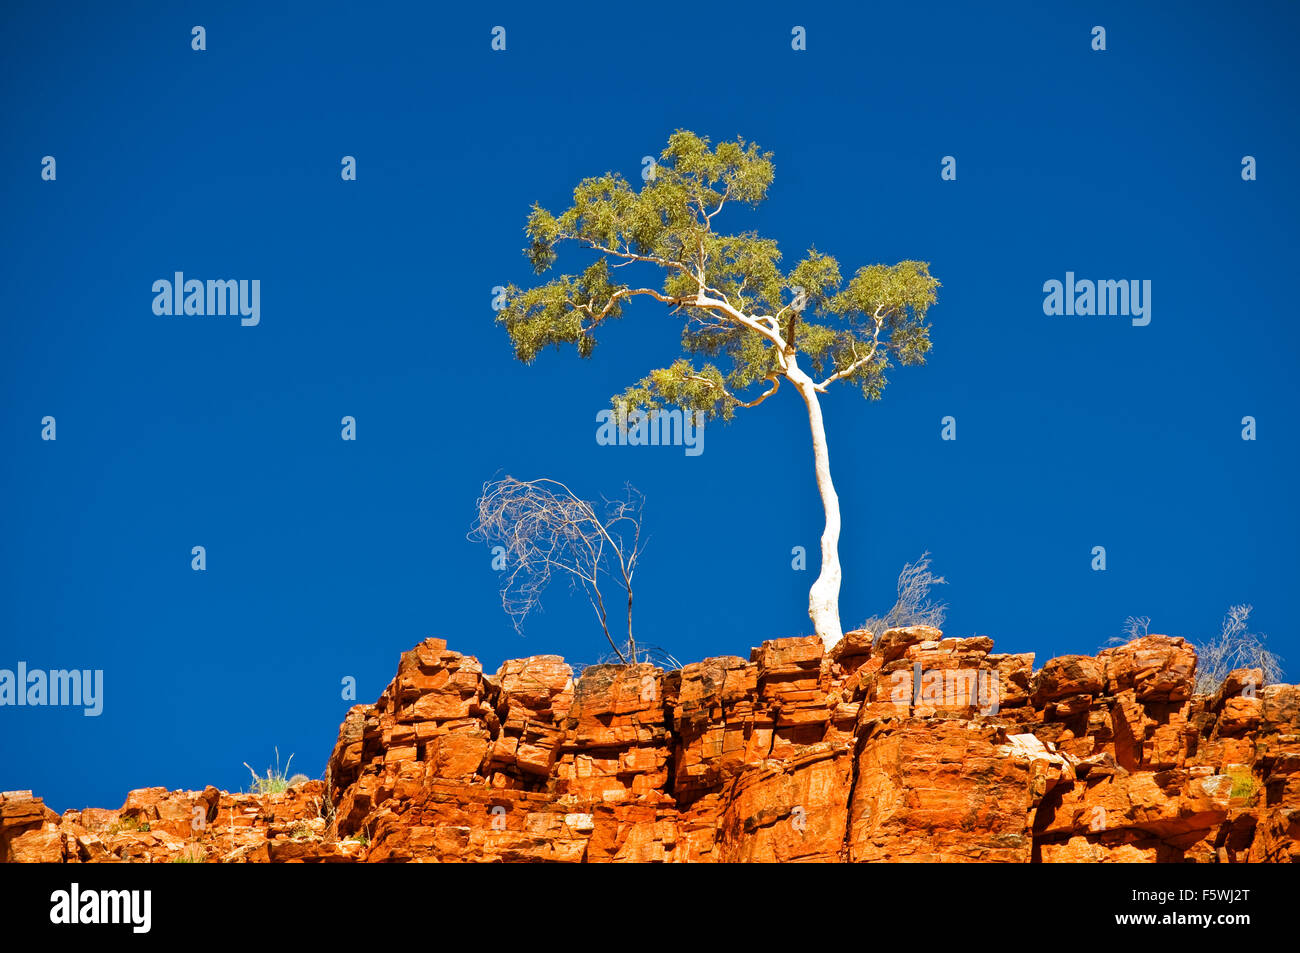 Lonely Ghost Gum standing on the edge of a red cliff in MacDonnell Ranges. - Stock Image